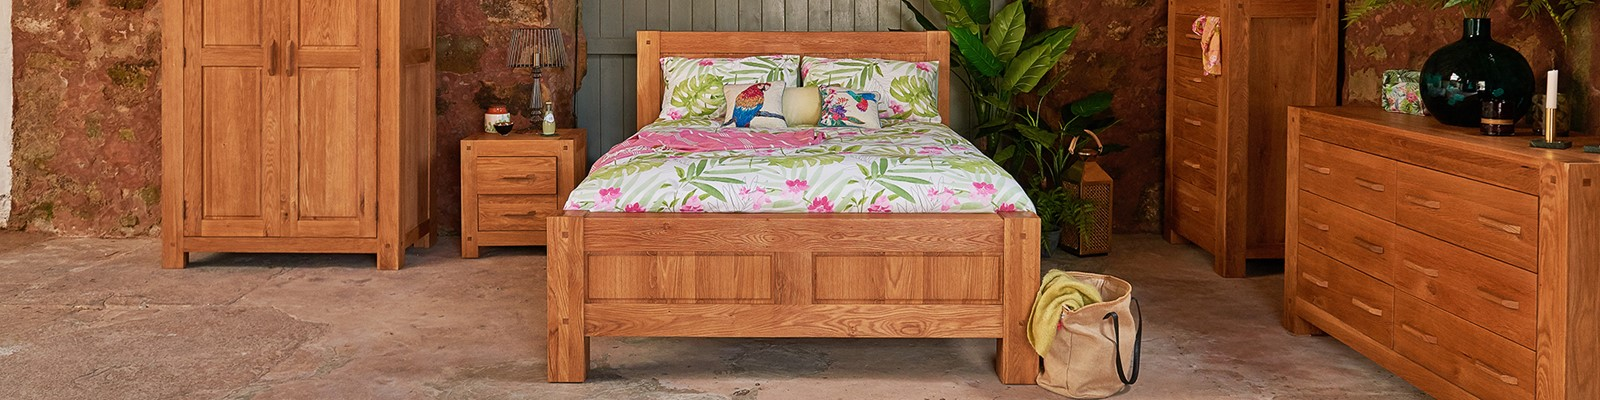 Buy Bedroom Furniture Mattresses Sterling Furniture